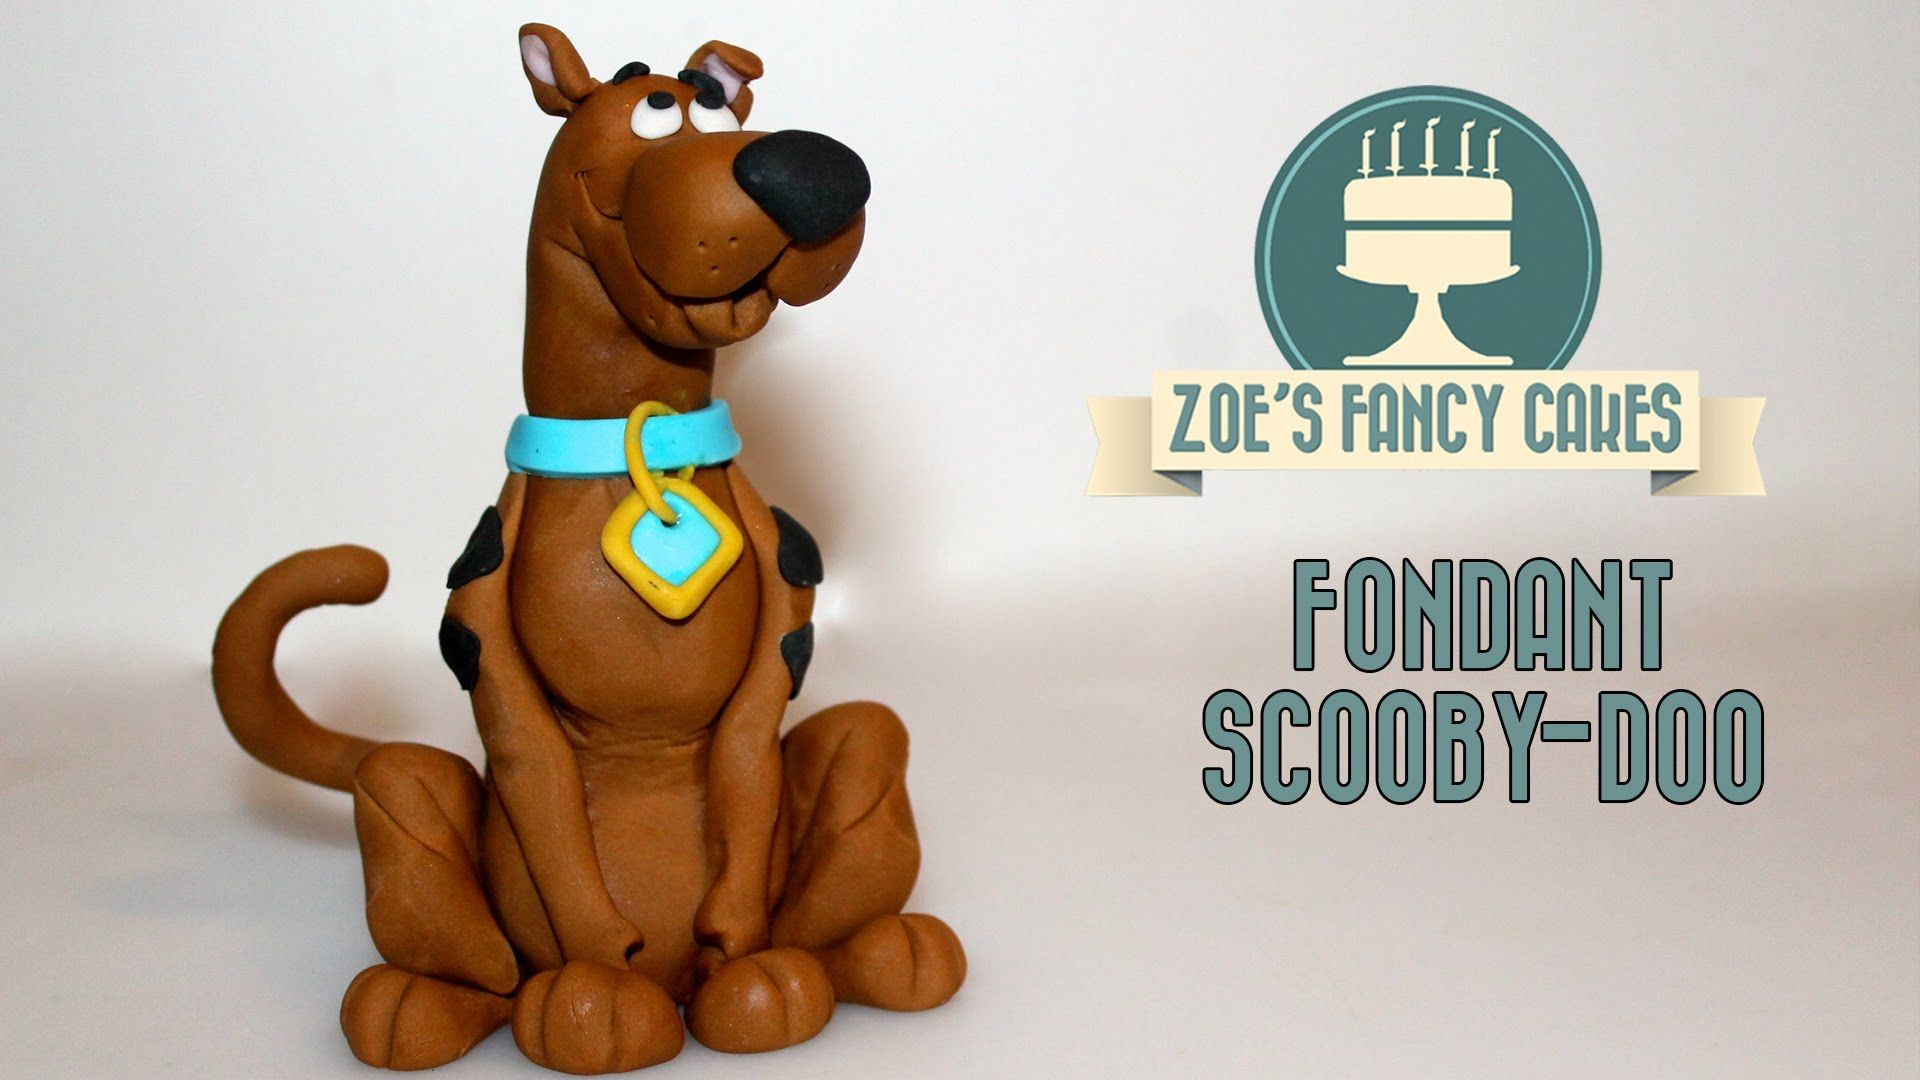 Cake Decorating Animal Figures Scooby Doo Fondant Cake Topper Tutorial In This Scooby Doo Cake